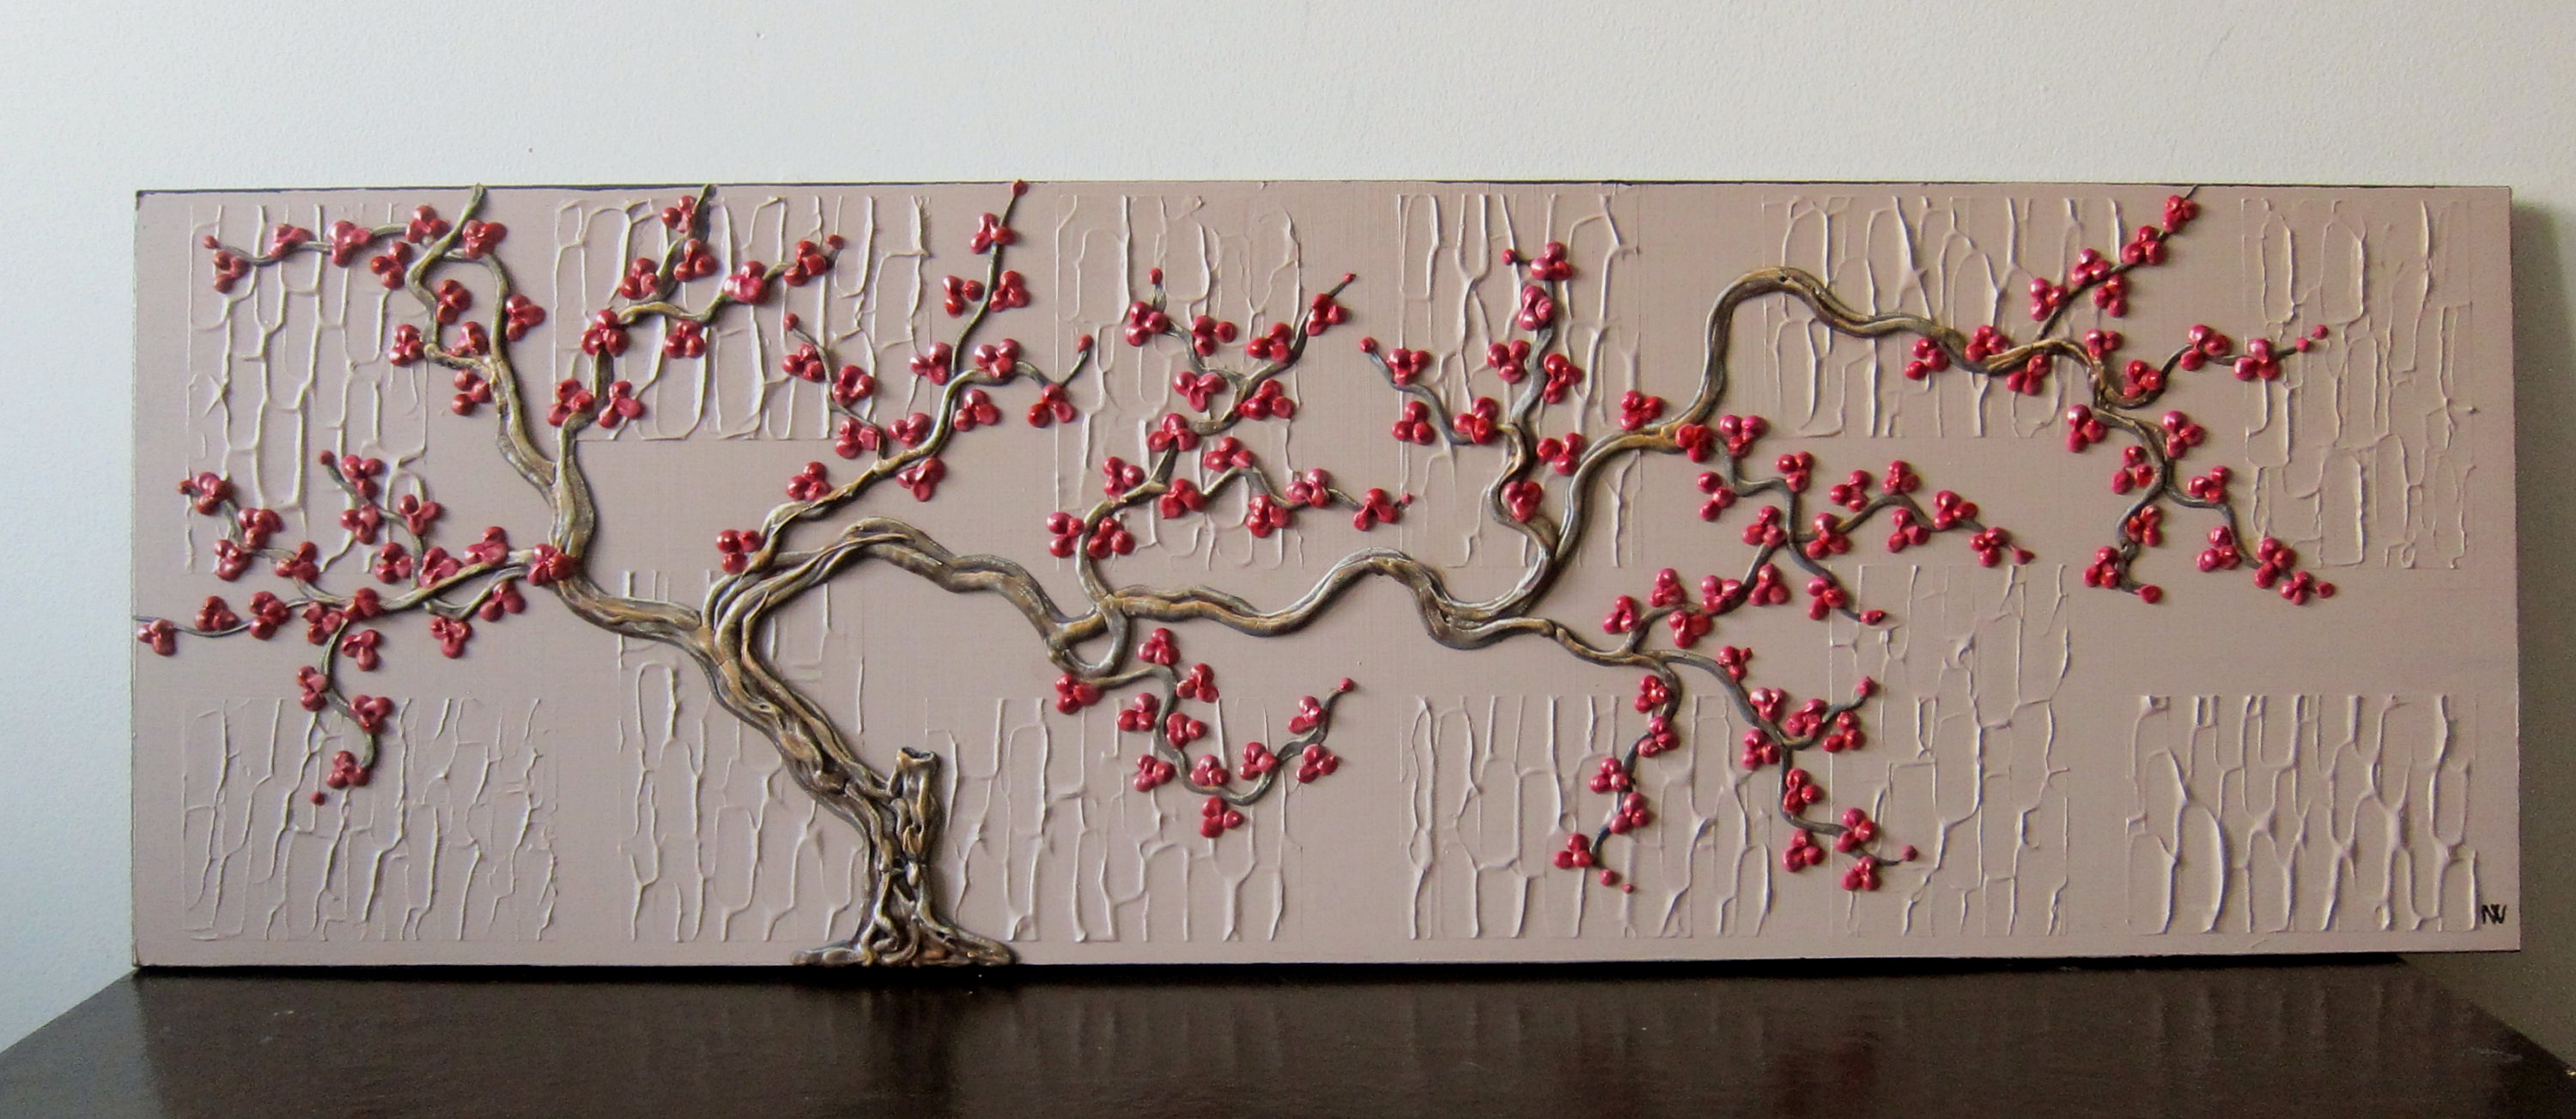 Tree Painting Sculpted Wood Textured 3d Original Art One Of A Kind Wall Art Home Decor 40x16 By Artist Nathalie Van